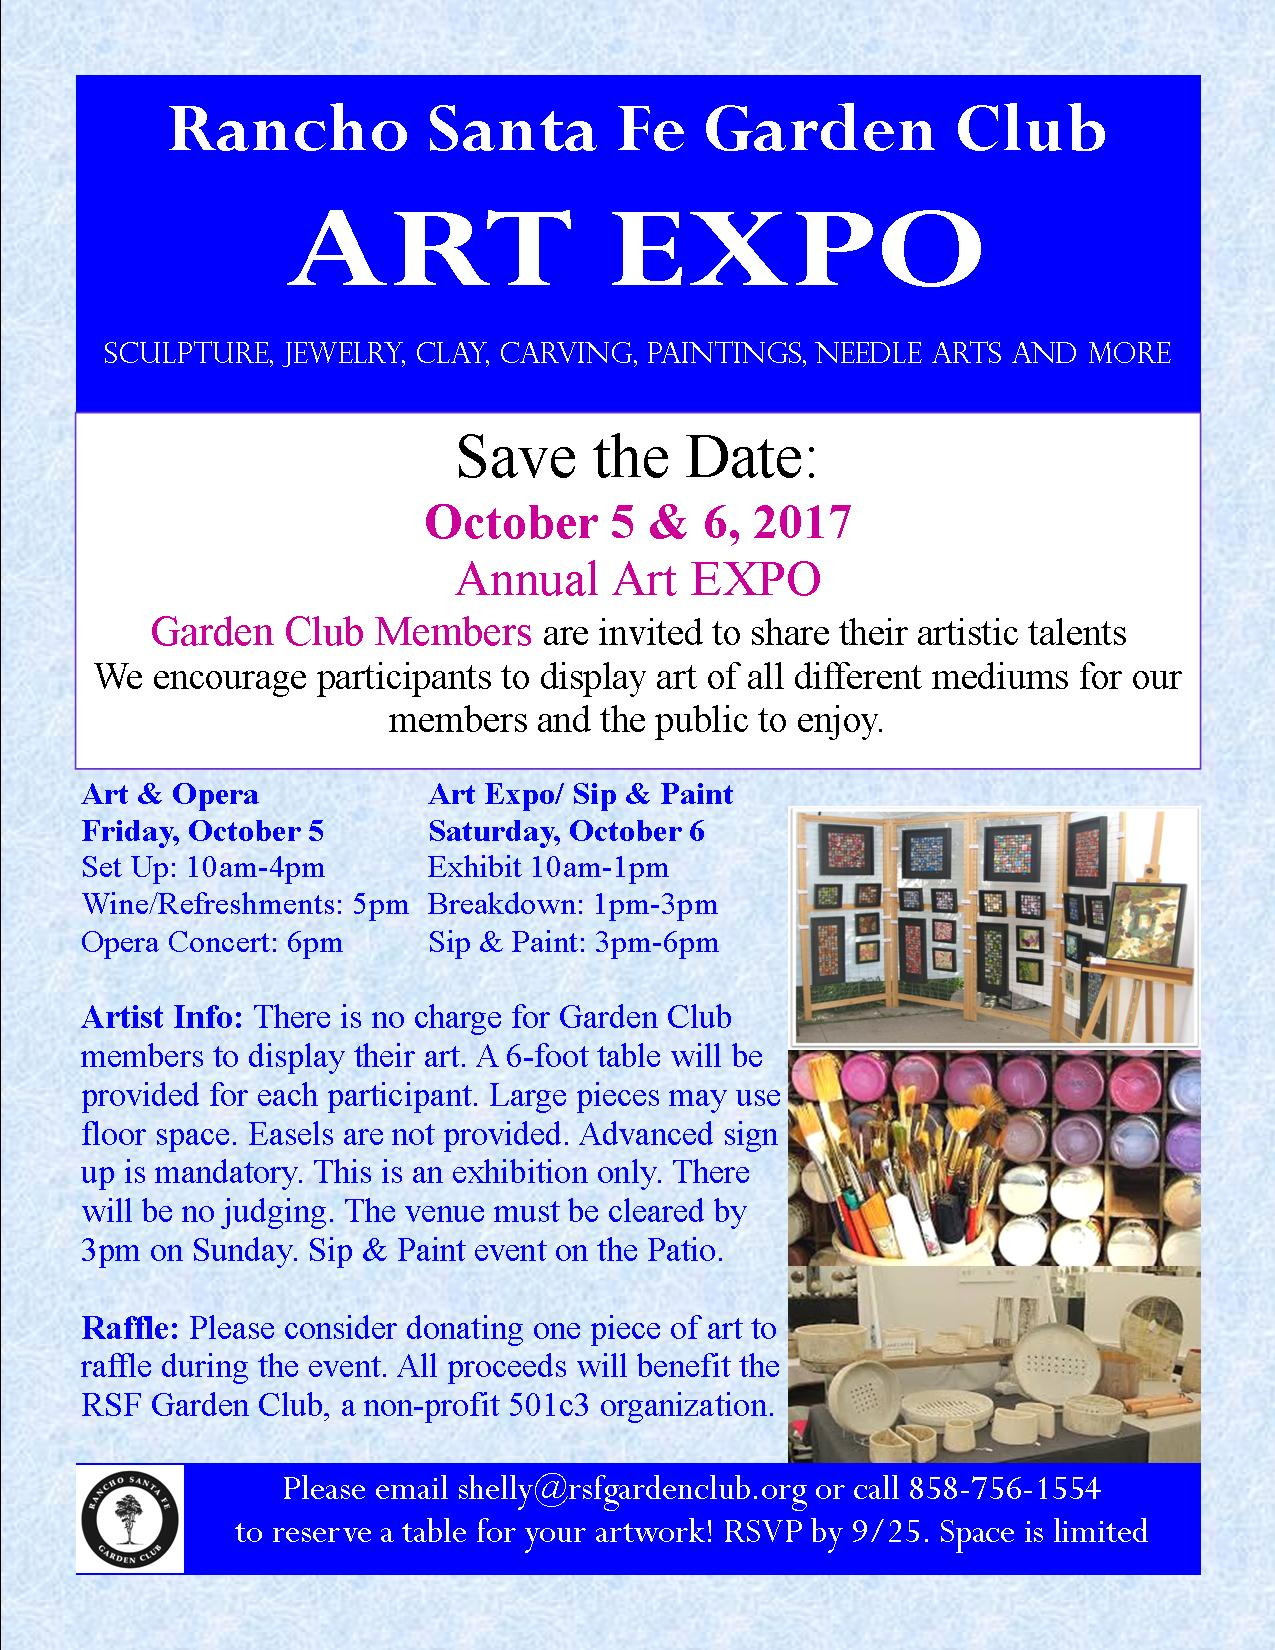 Art-Expo-Save-the-Date-2017.jpg